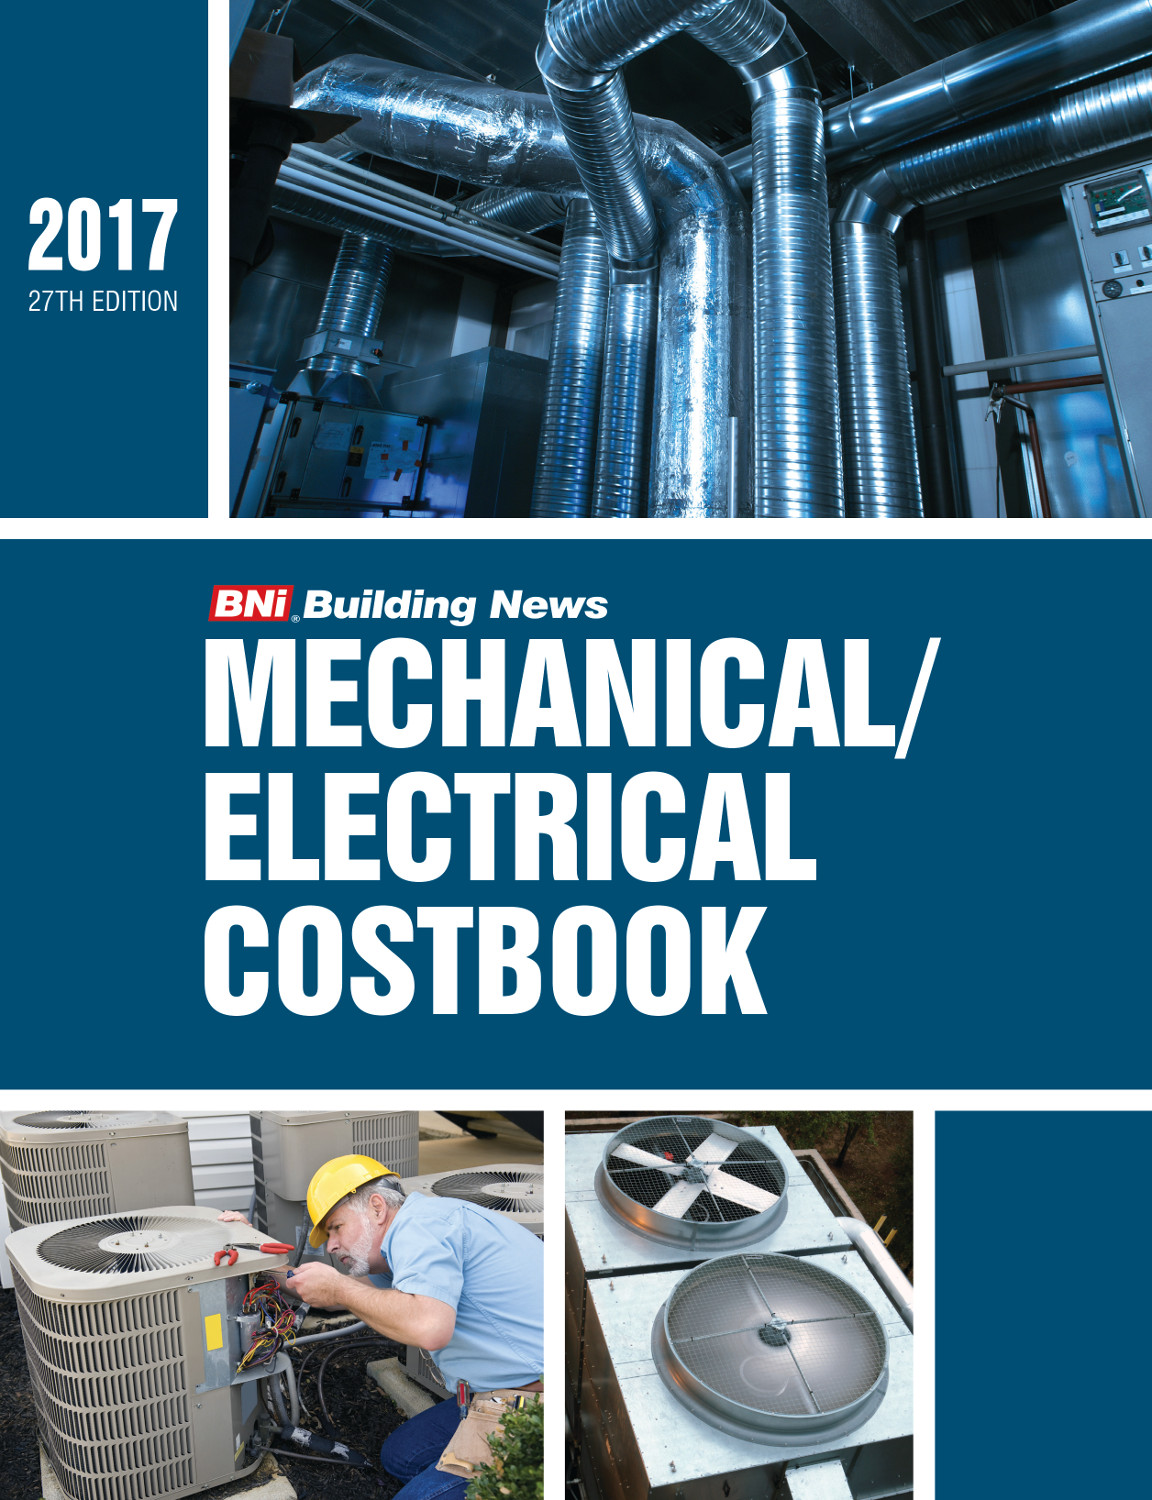 BNI Mechanical / Electrical Costbook 2017